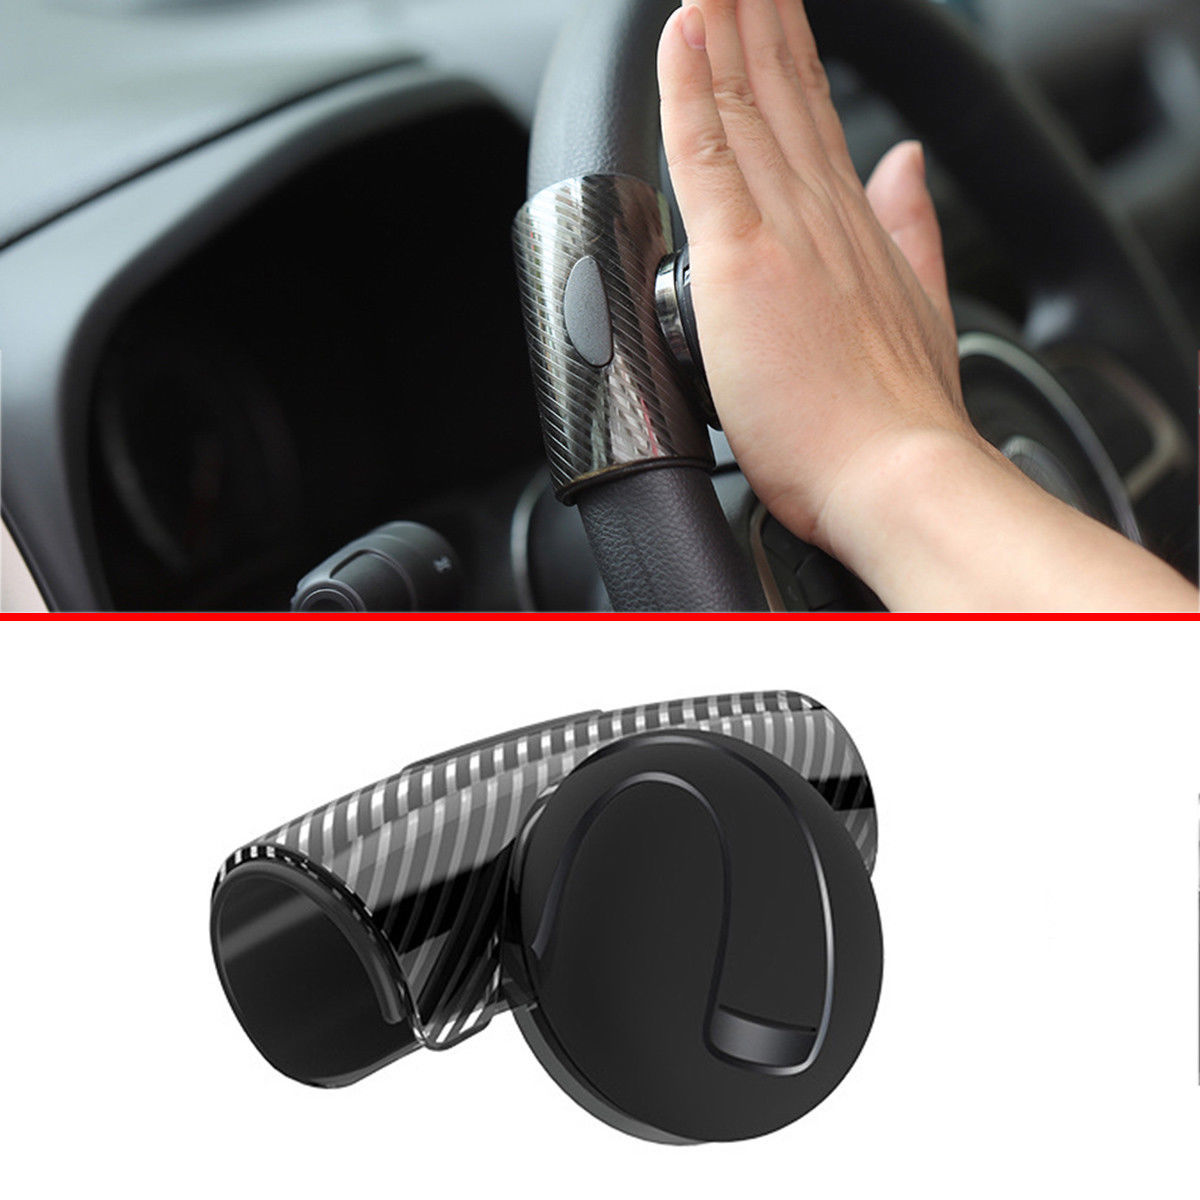 360 Rotatable Car Power Steering Wheel Knob Grilp Ball Booster Auto Stlying  Handle Aid Control Spinner Assist Accessory Parts